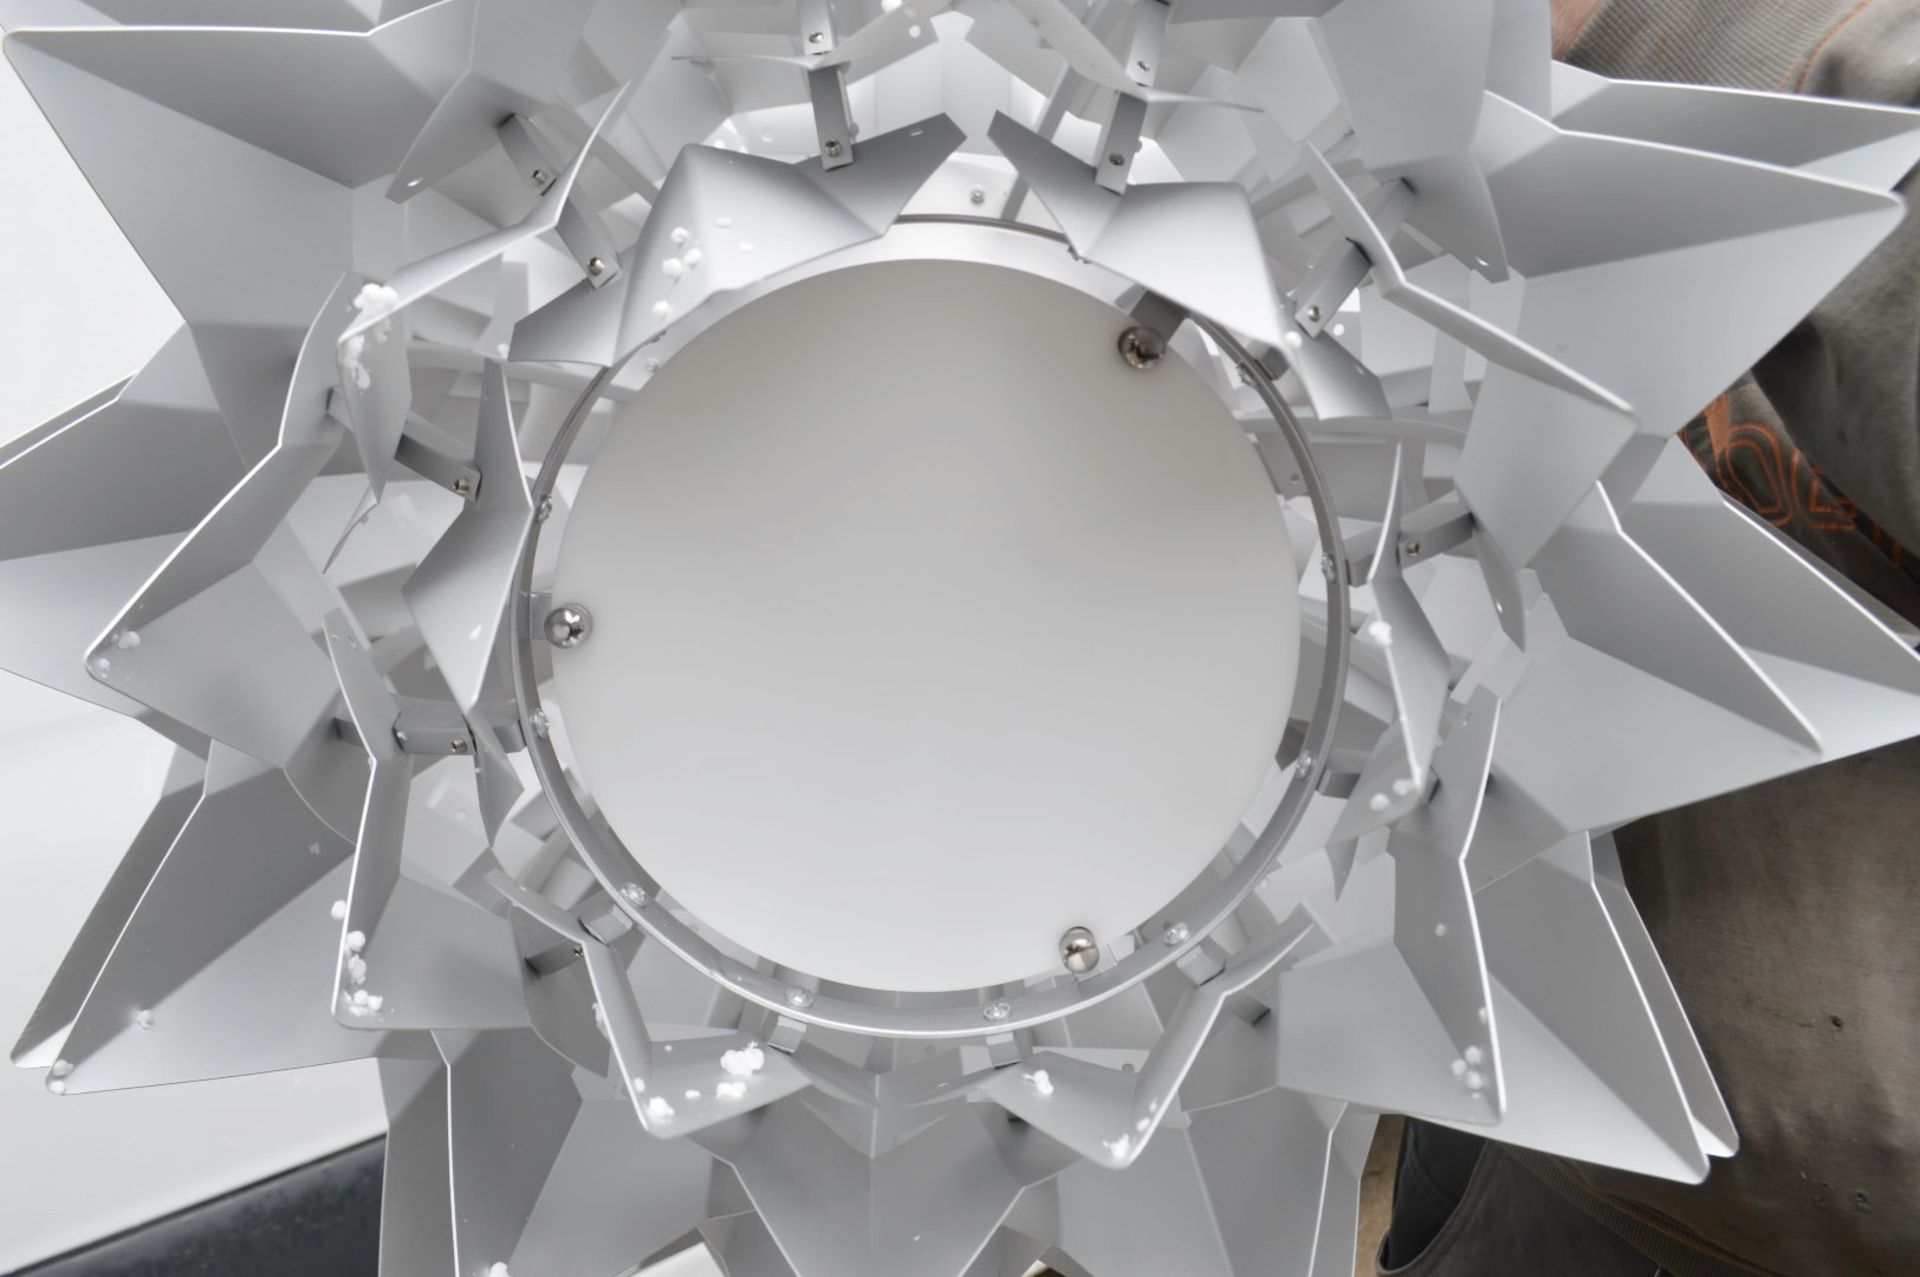 1 x 'Comosus' Statement Ceiling Pendant Light In Aluminium With A Brushed Silver Finish - Image 6 of 6